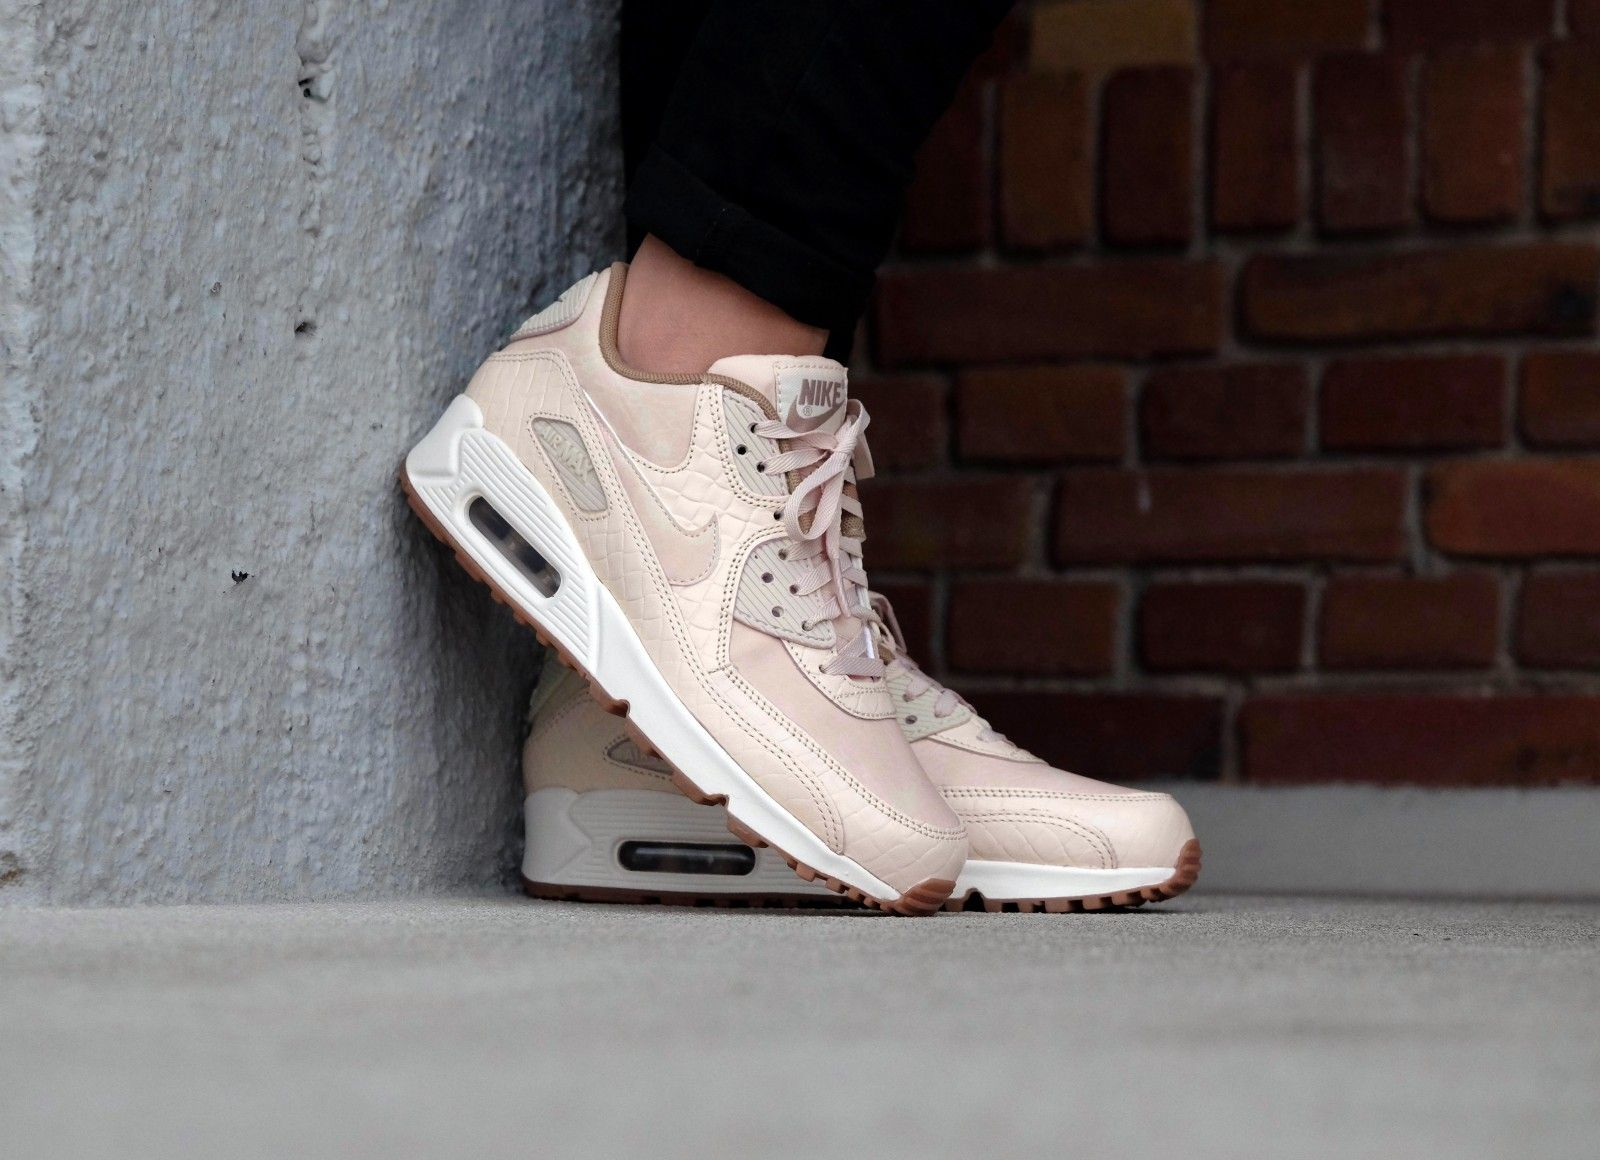 Nike Wmns Air Max 90 PRM Oatmealoatmeal sail khaki 443817